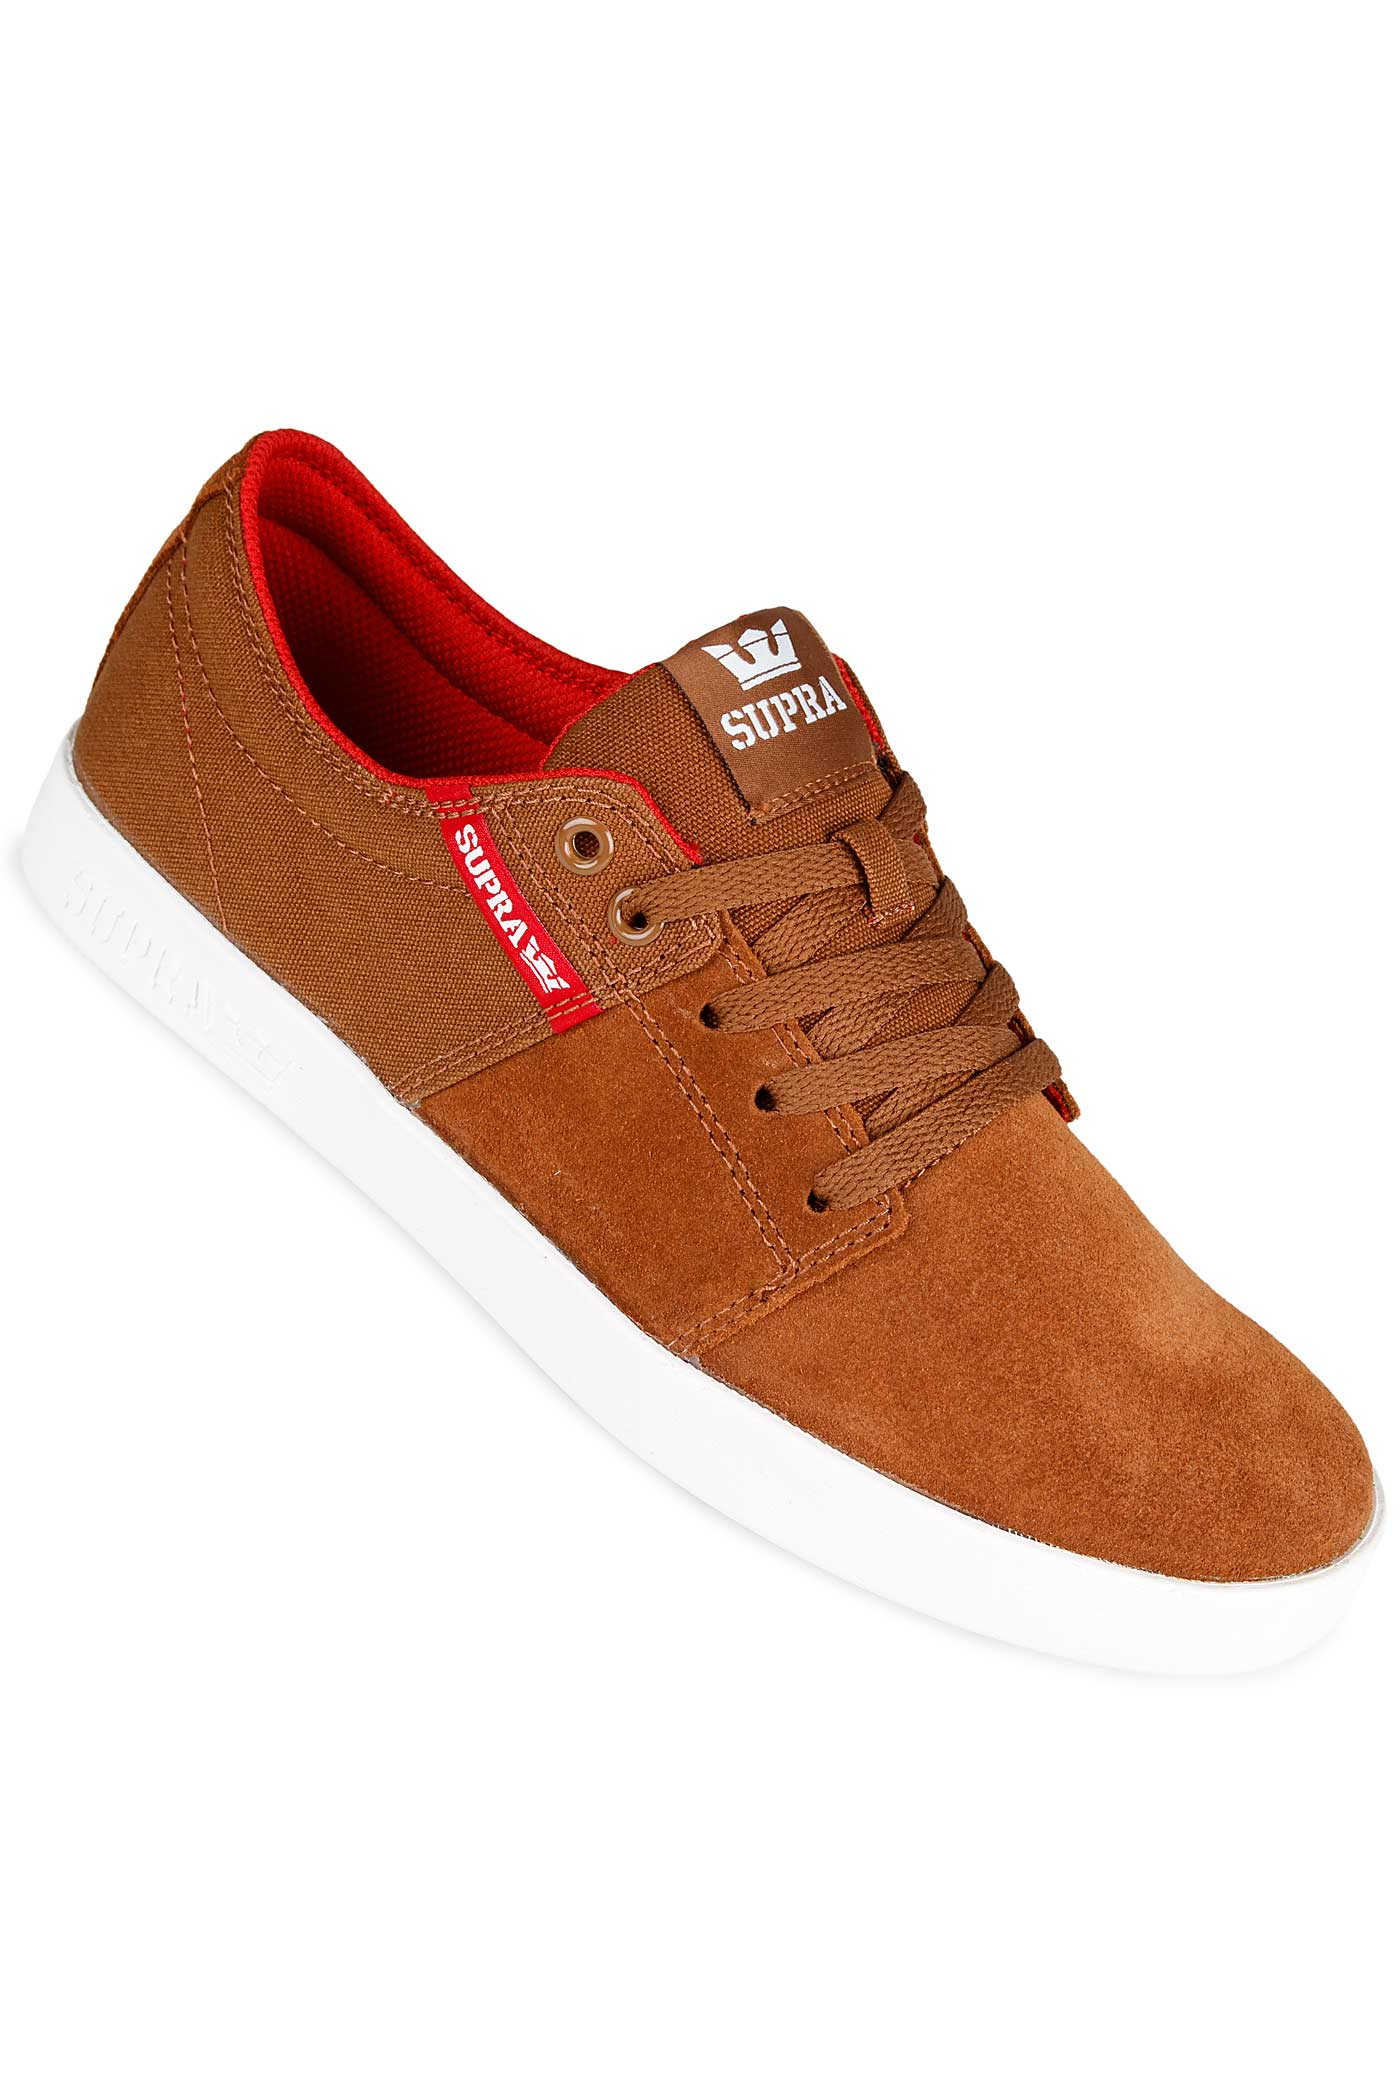 e72d652a3014 Supra Stacks II Shoe (brown red white) buy at skatedeluxe